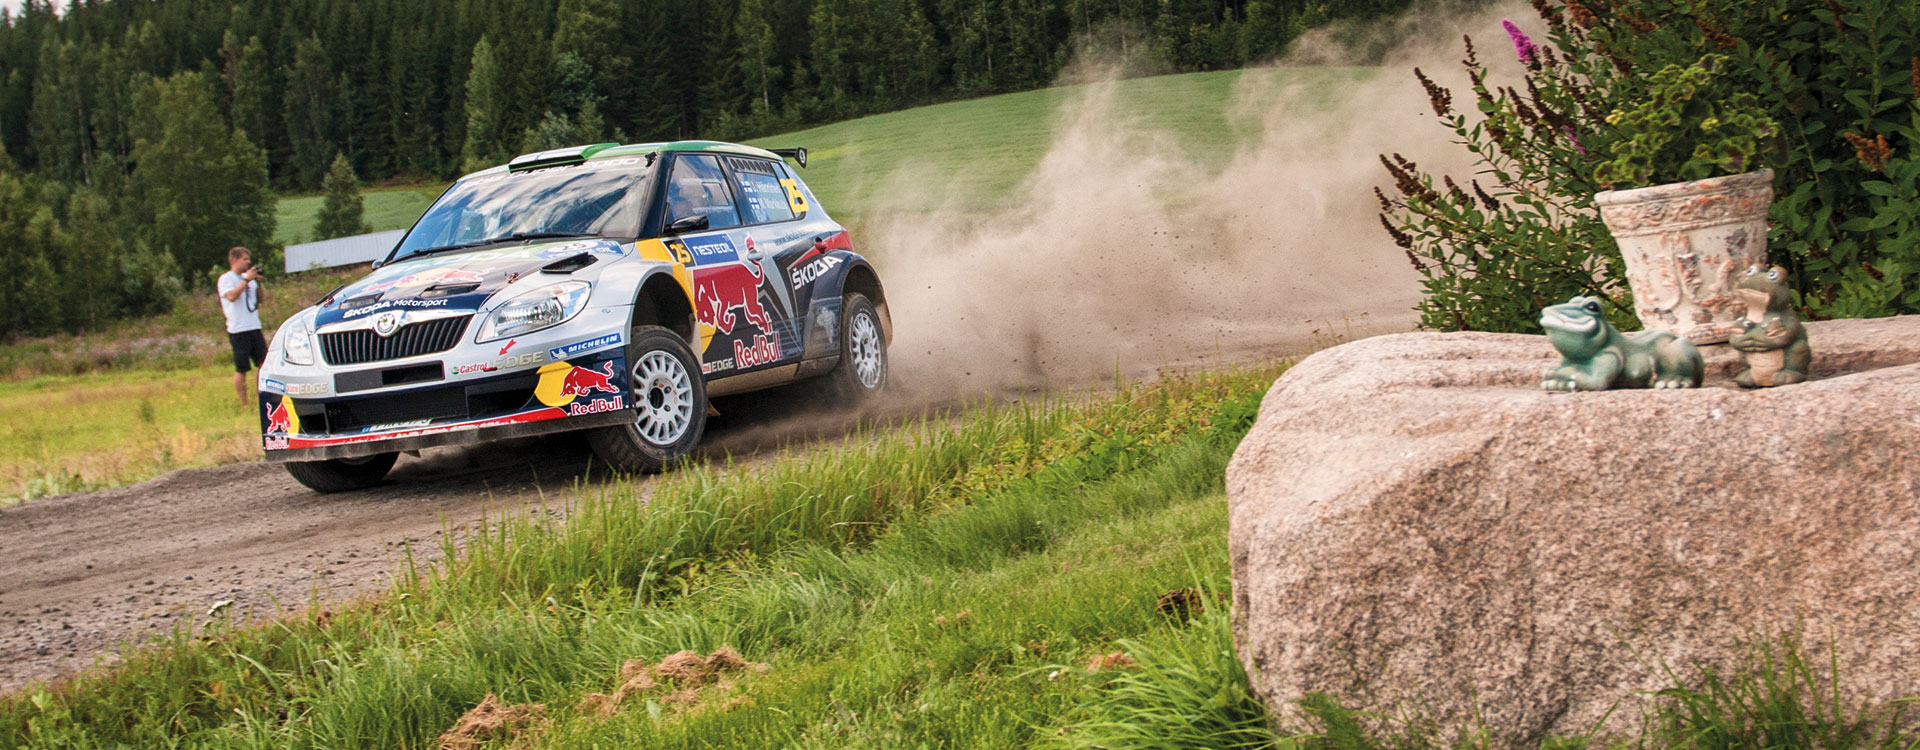 From the archives: In 2011, Hänninen and Fabia S2000 shone in Finland